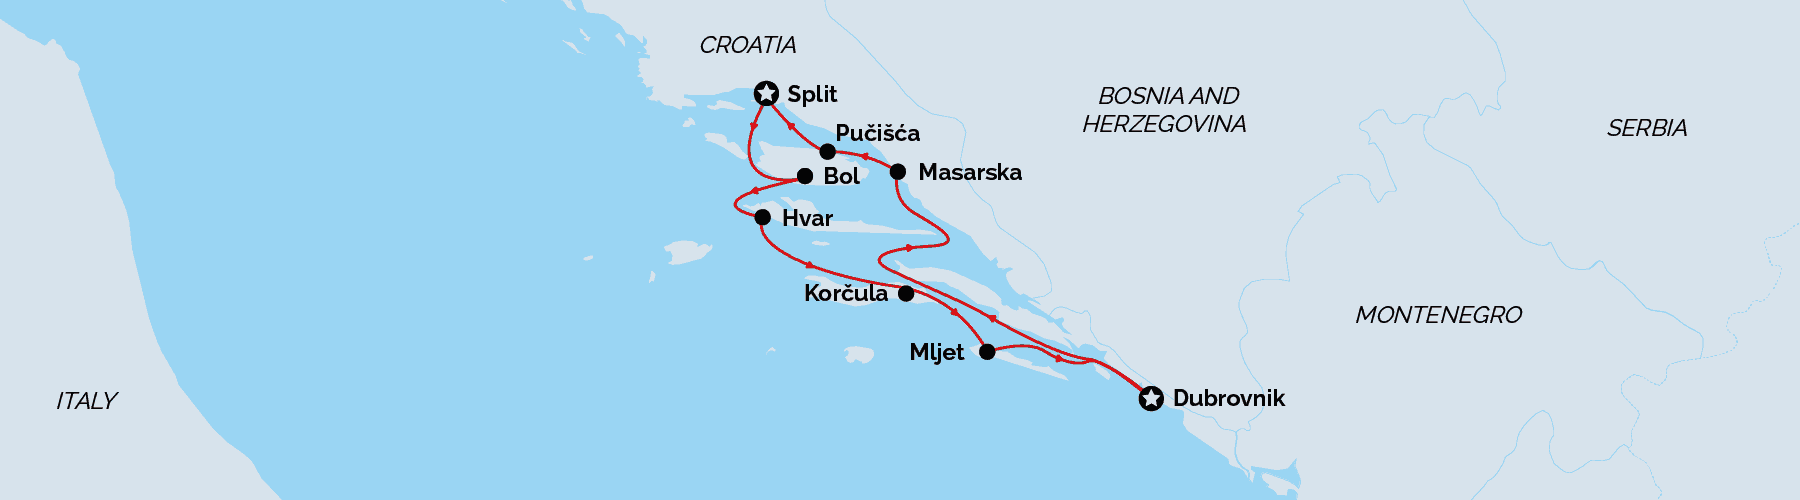 Cruise map Split return, luxury